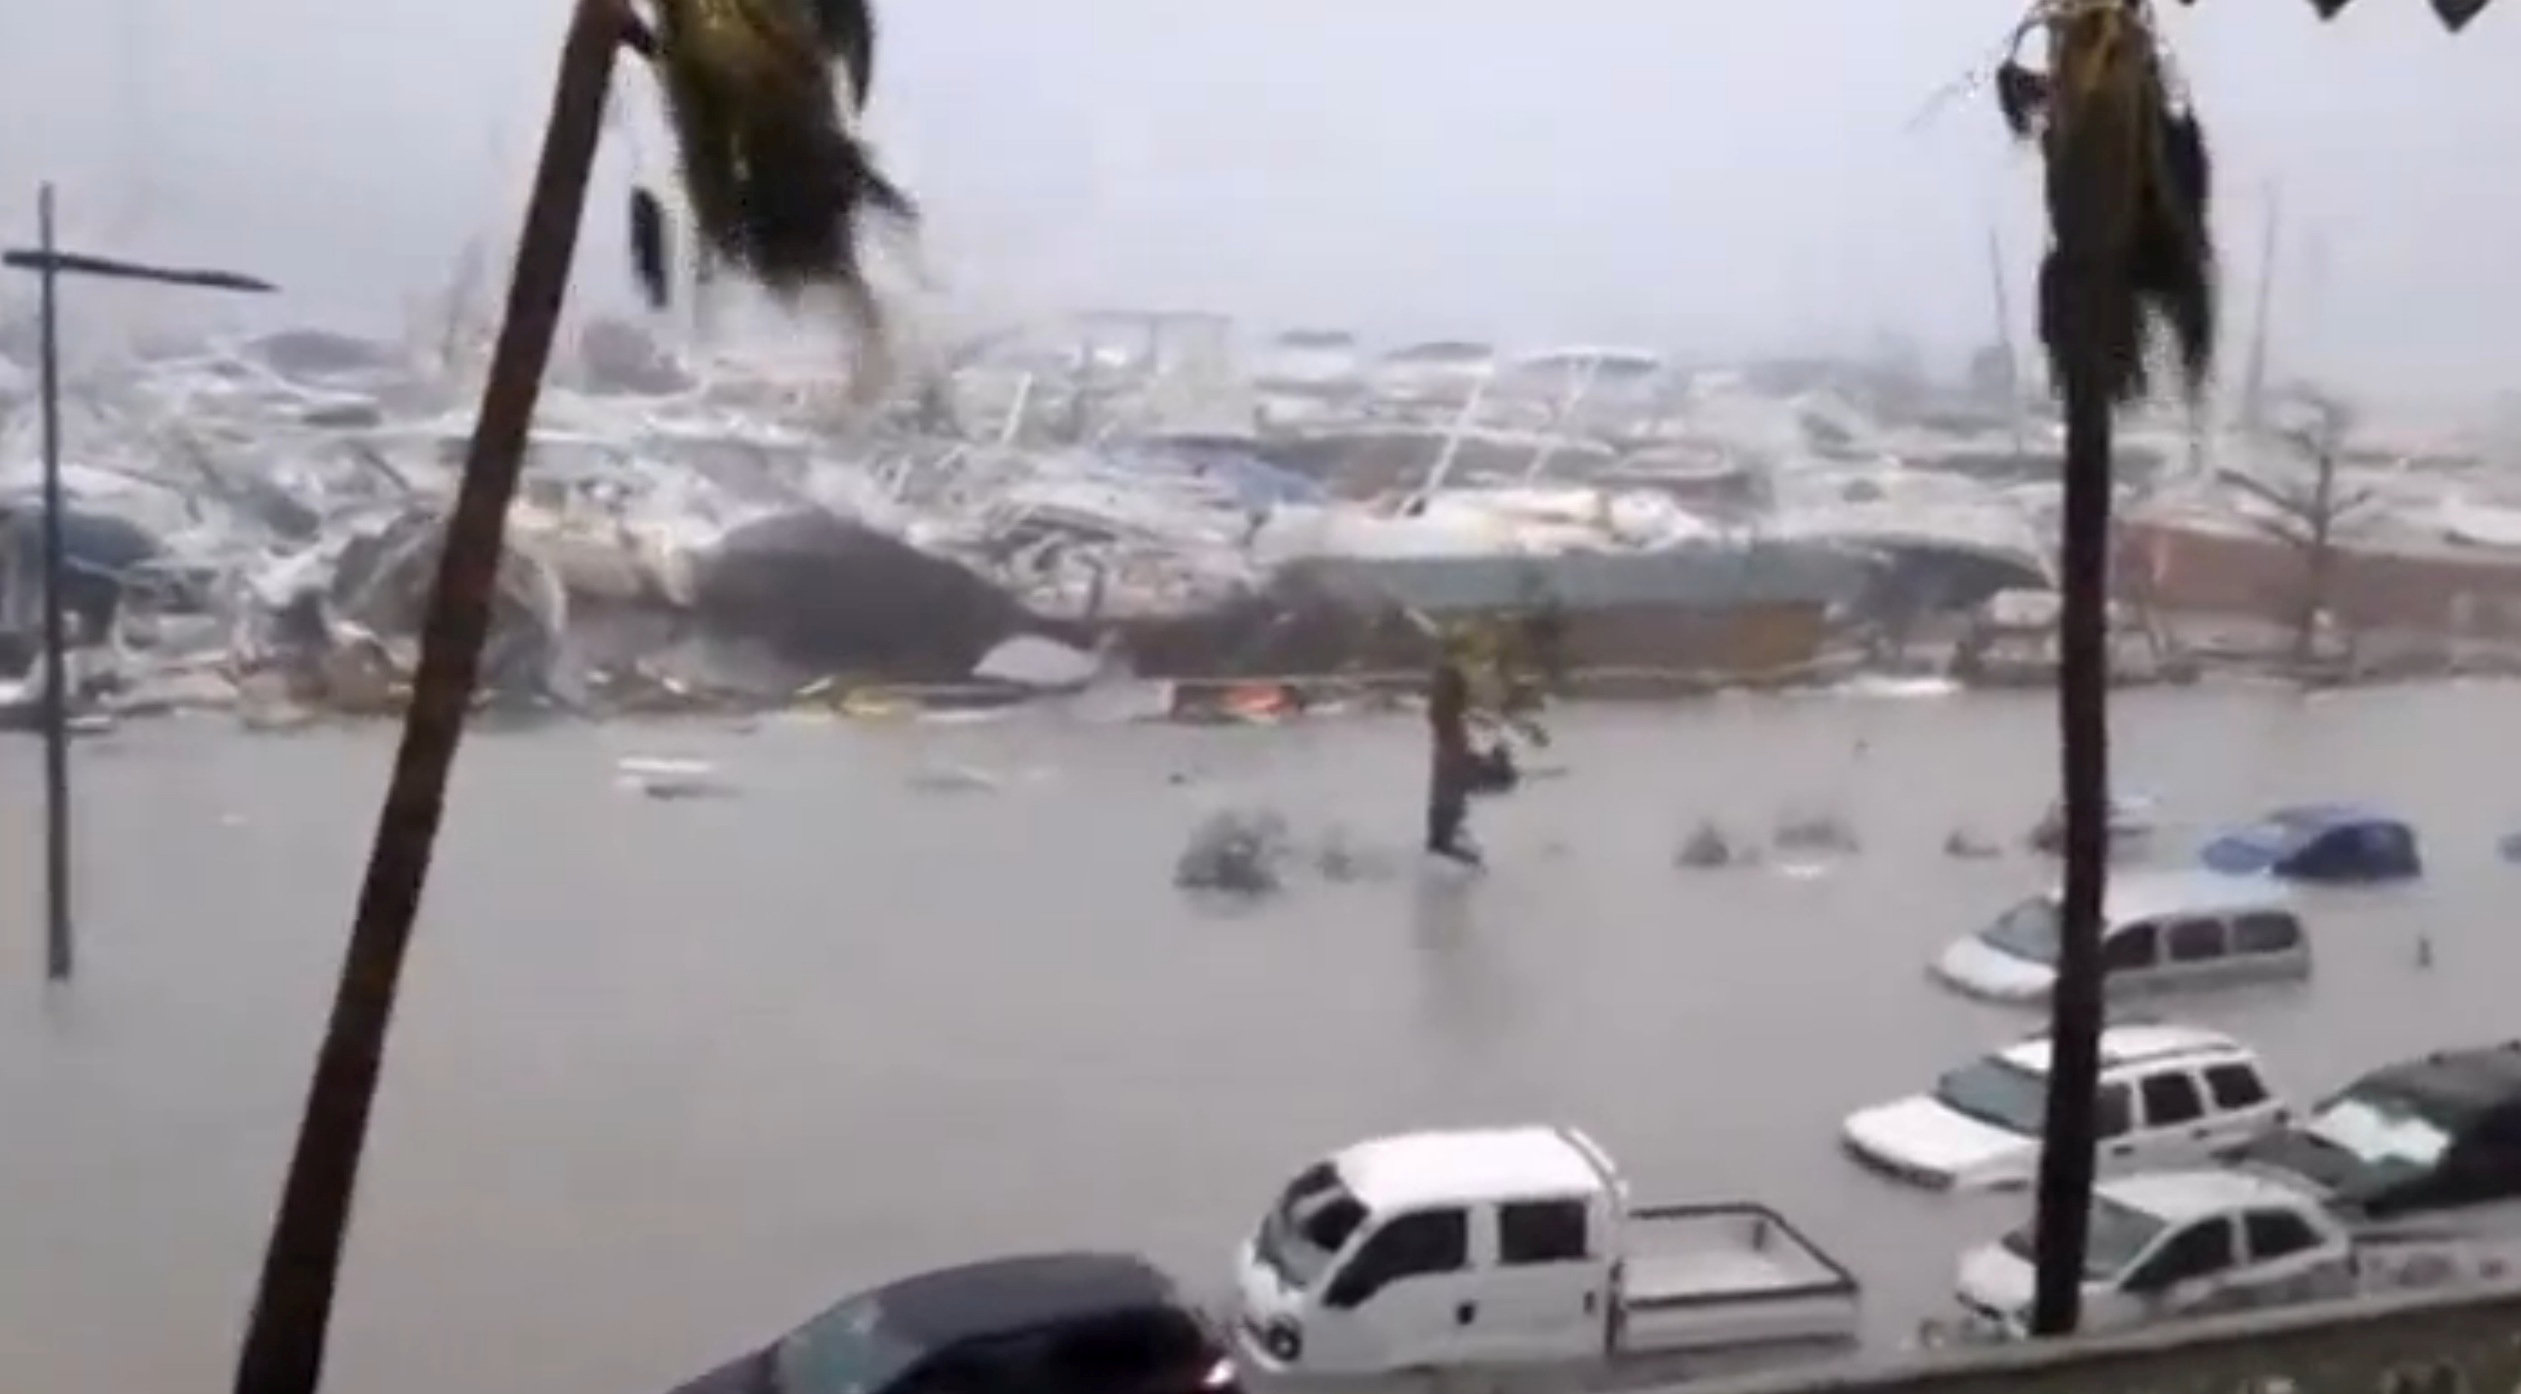 General view of half-submerged vehicles, boats and debris in the flooded harbour as Hurricane Irma  hits the French island territory of Saint Martin September 6, 2017. (RCI GUADELOUPE/Handout via REUTERS)